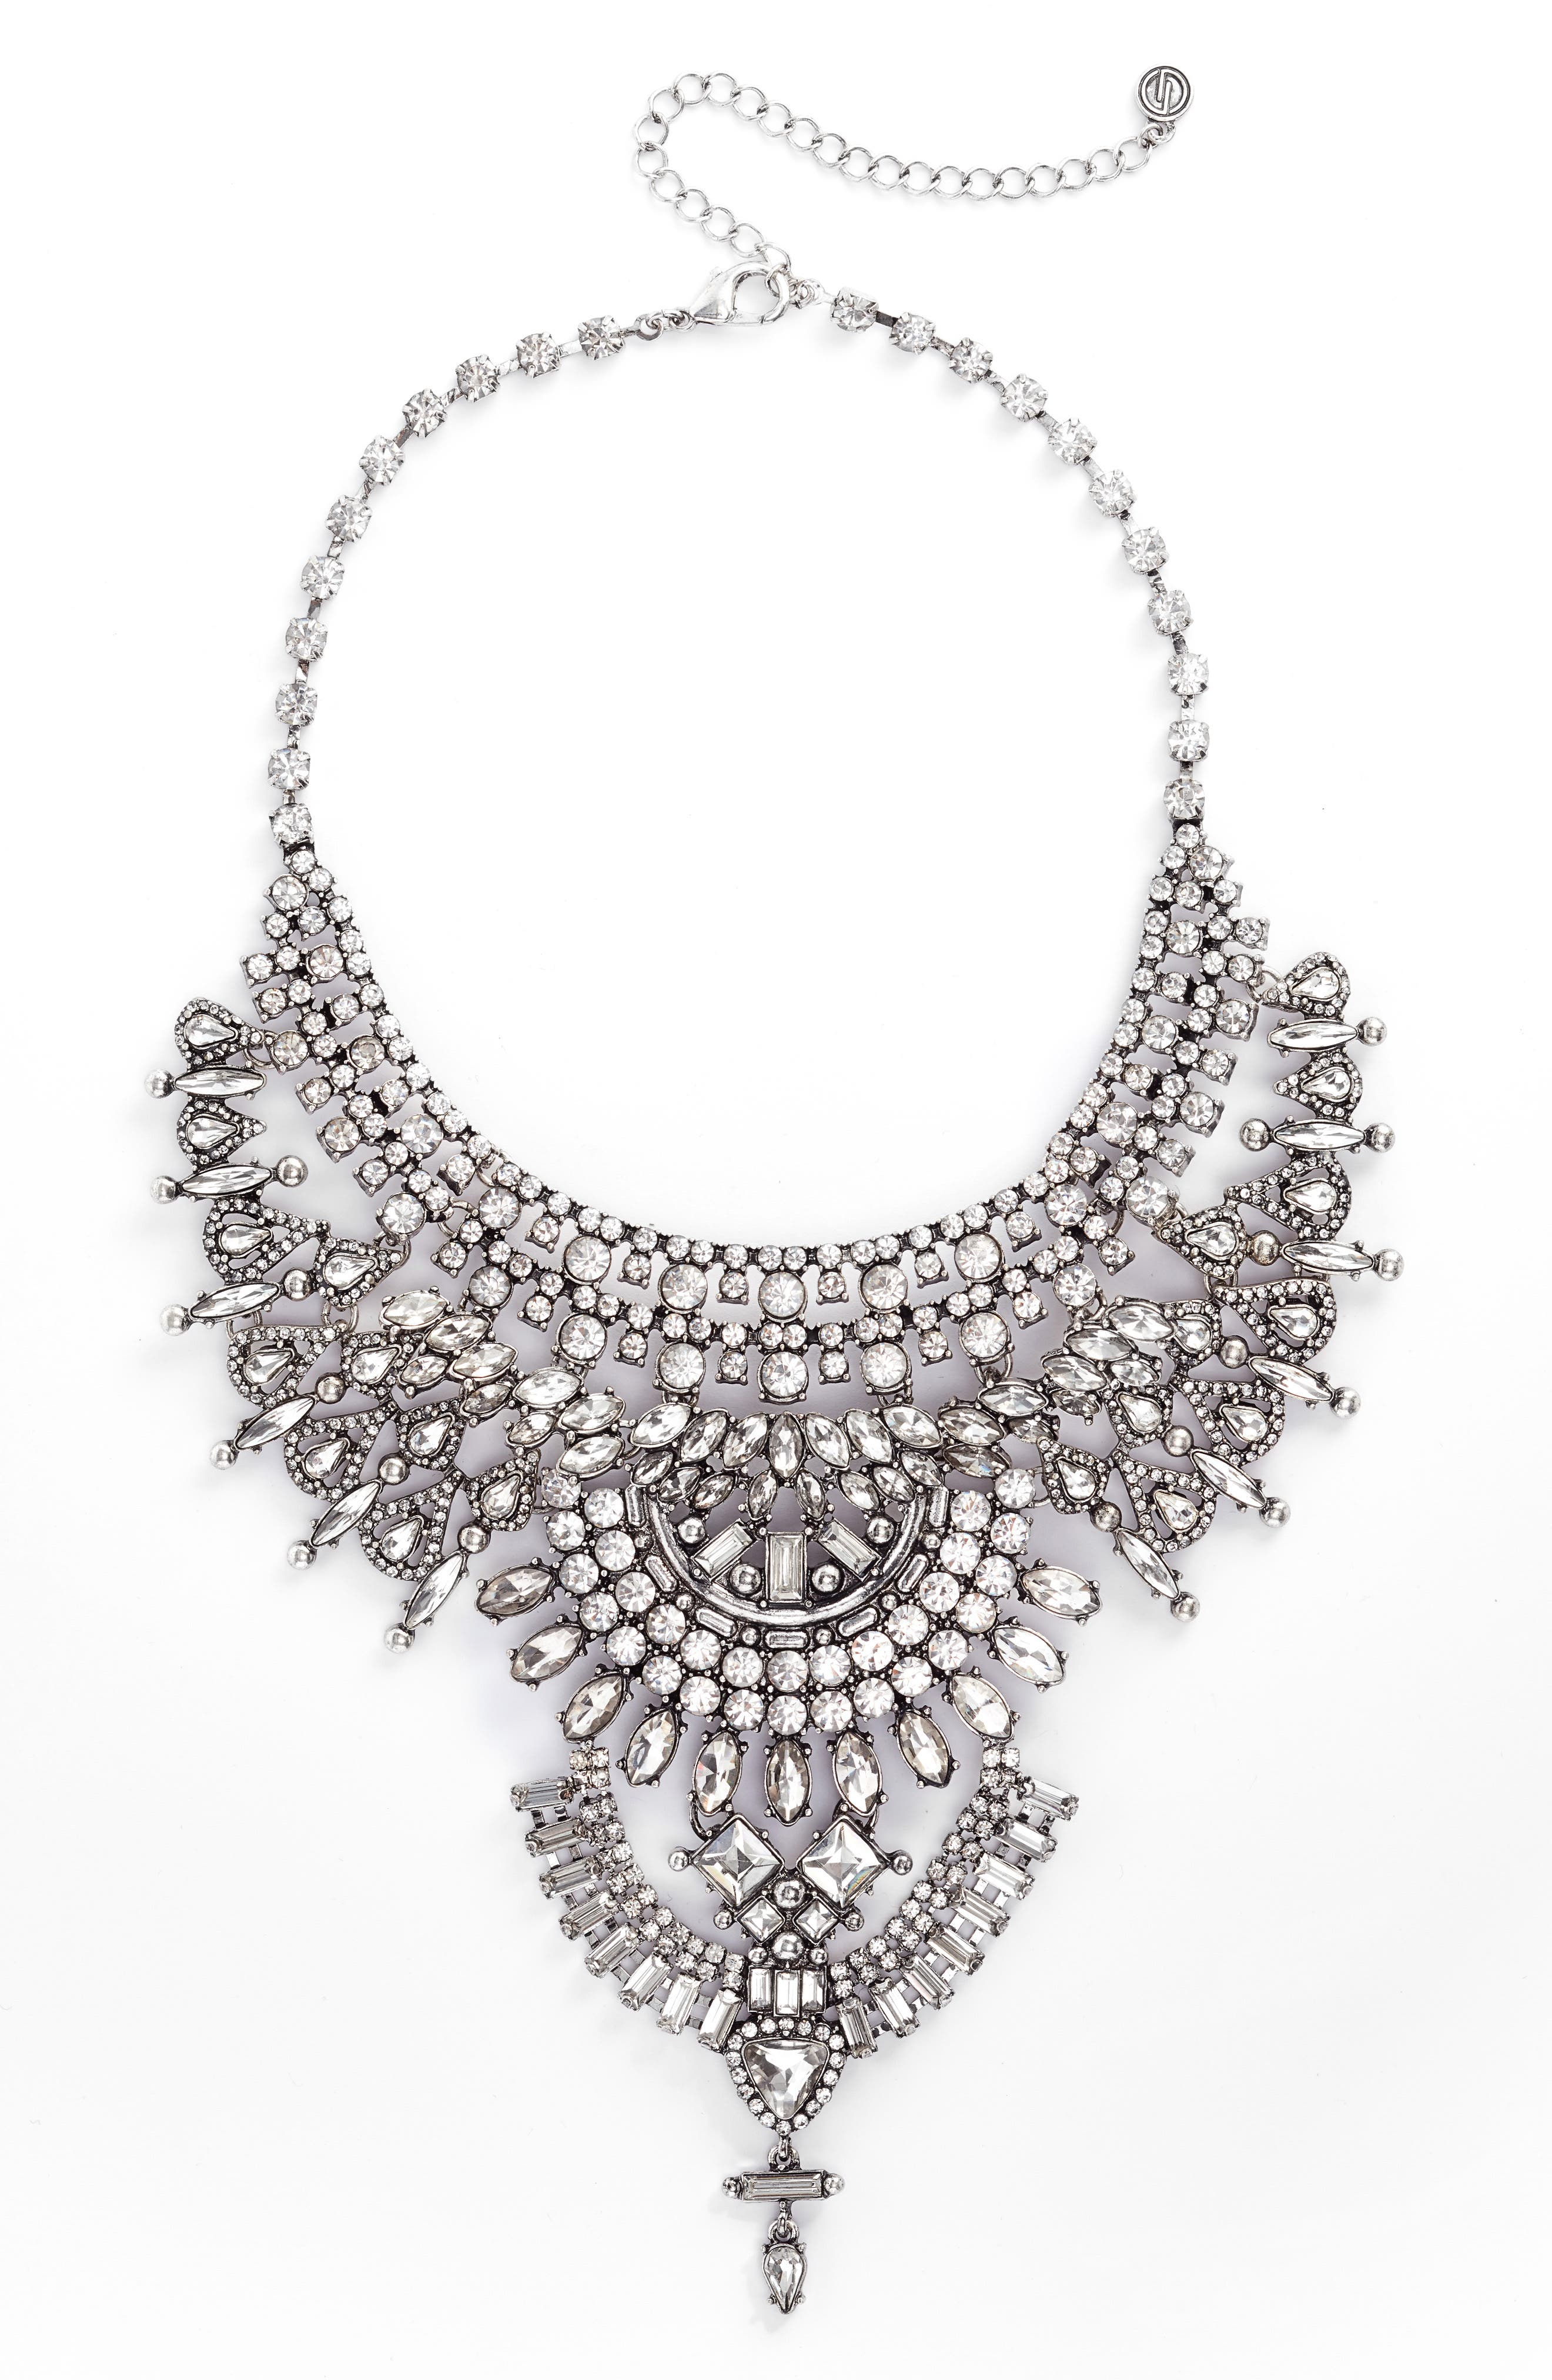 DLNLX BY DYLANLEX Chain & Crystal Necklace